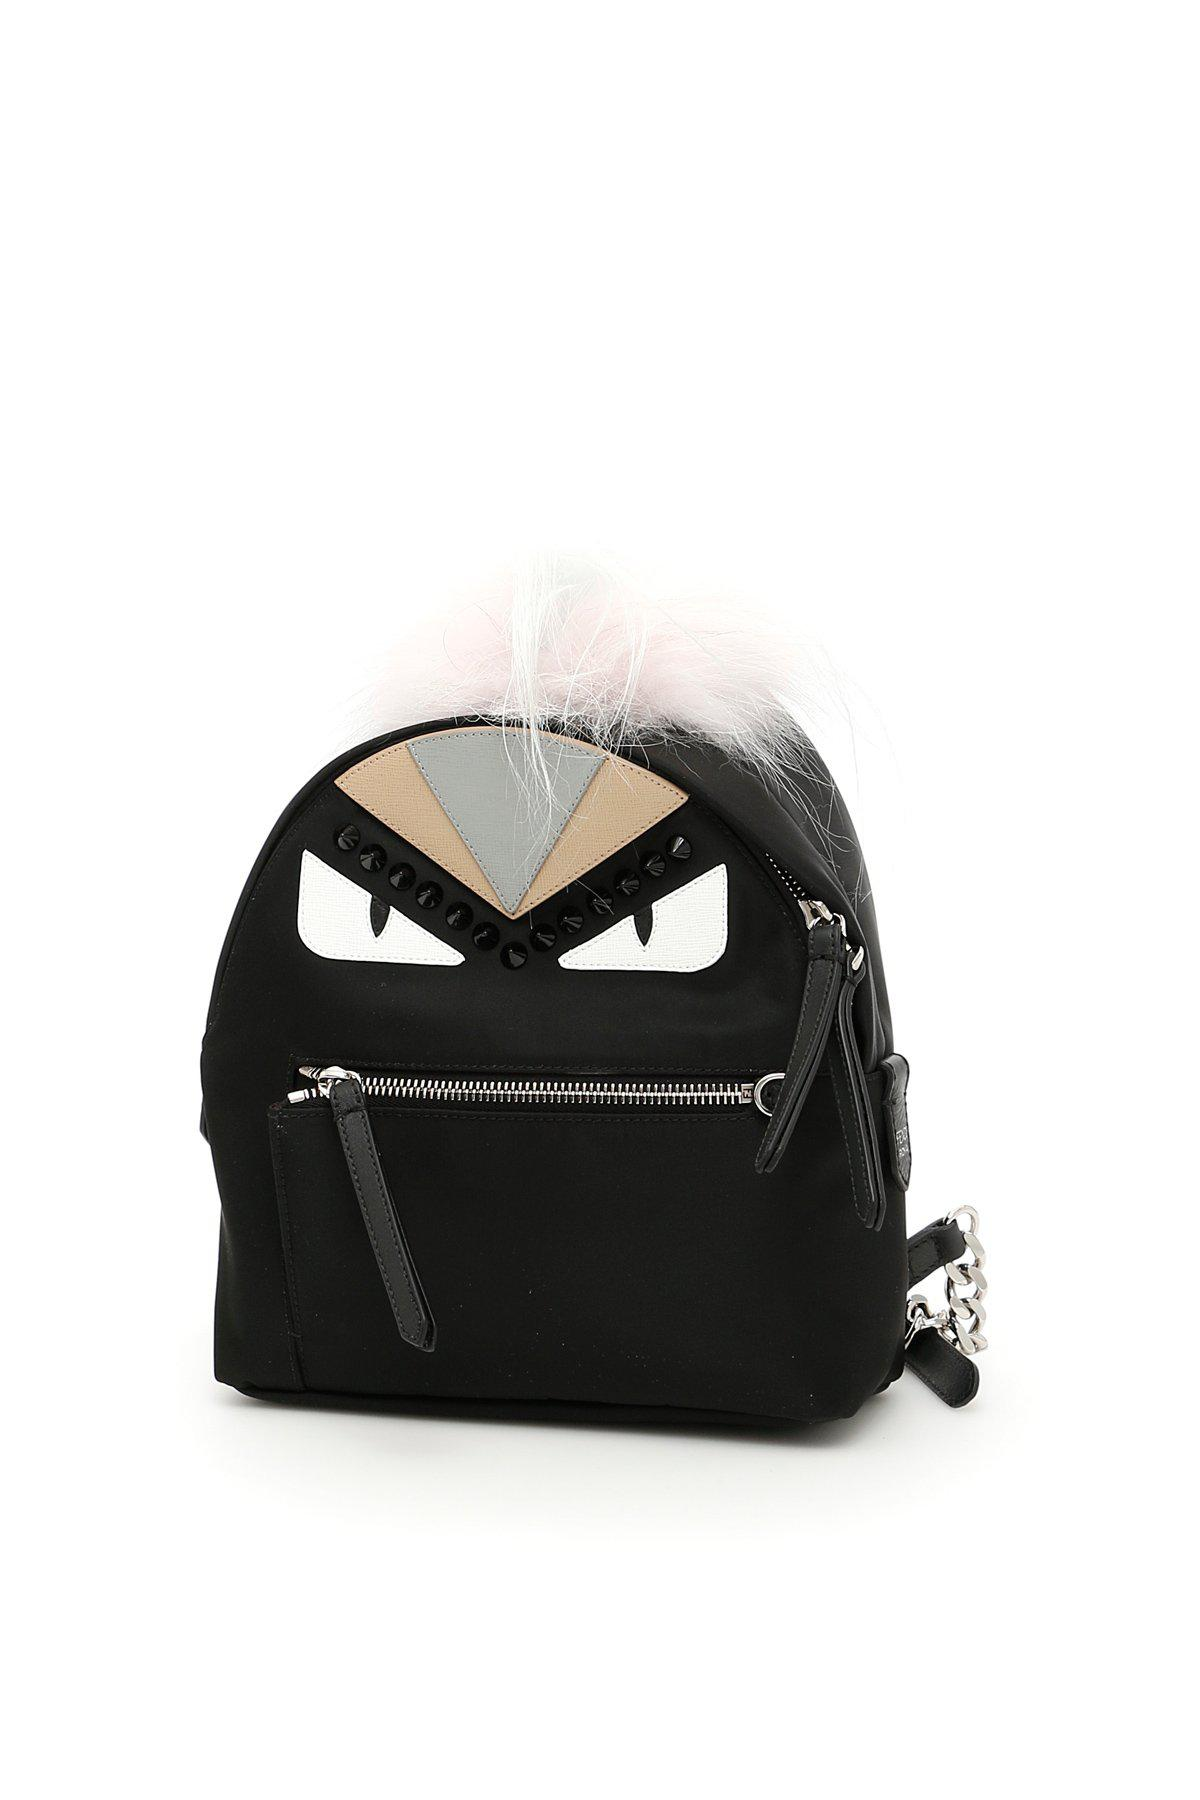 9524552174e0 Gallery. Previously sold at  Cettire · Women s Mini Backpack Women s Fendi  Bag Bugs ...